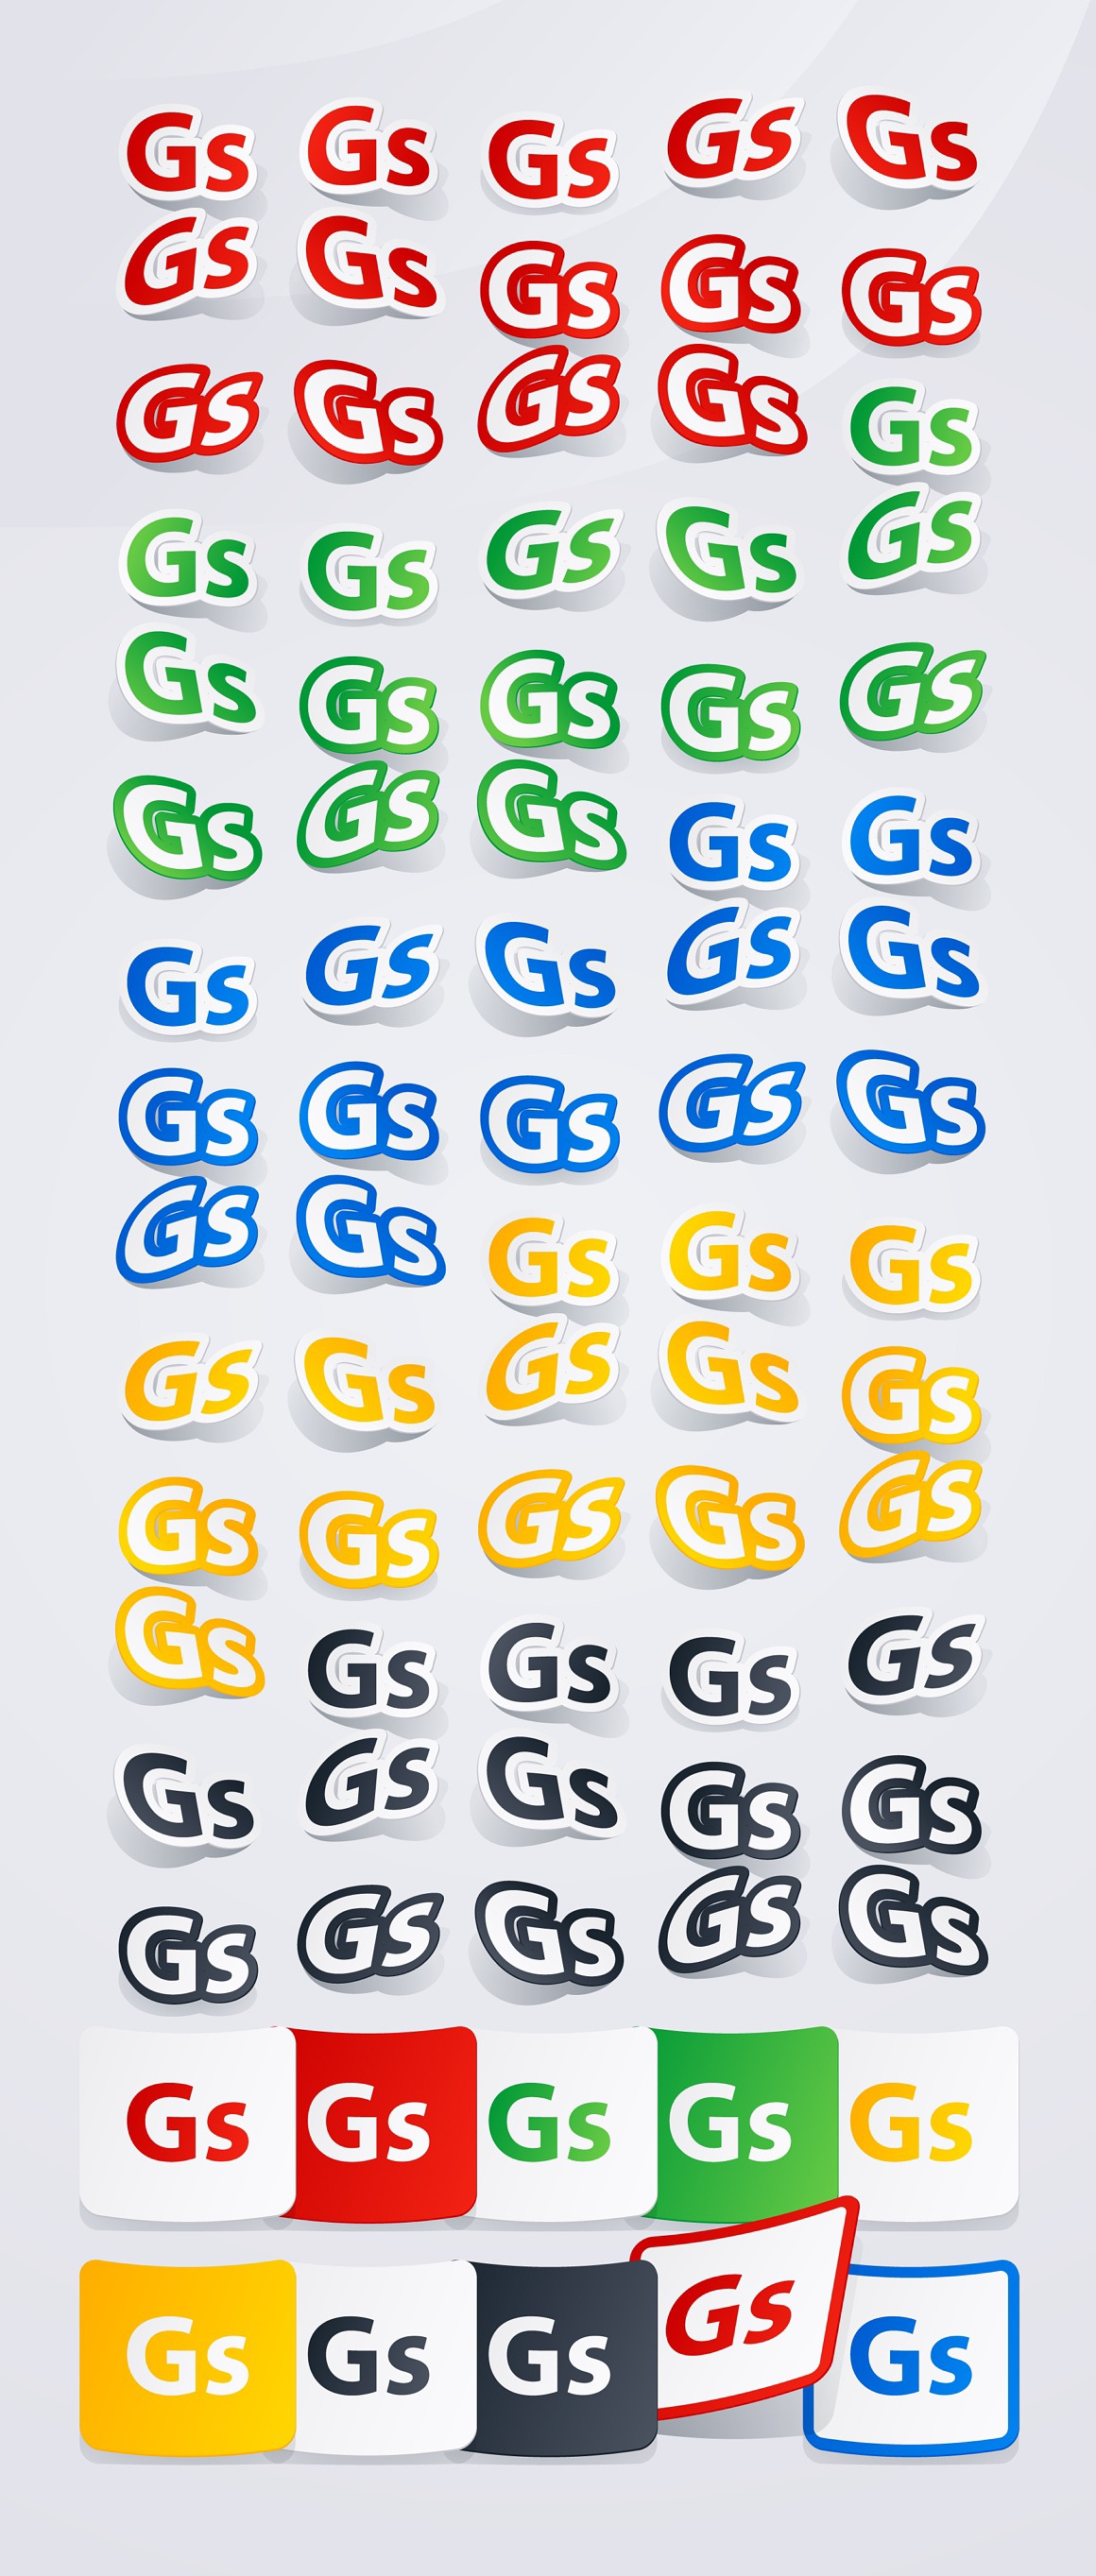 Stickers Adobe Illustrator styles images/stickers_2_styles.jpg